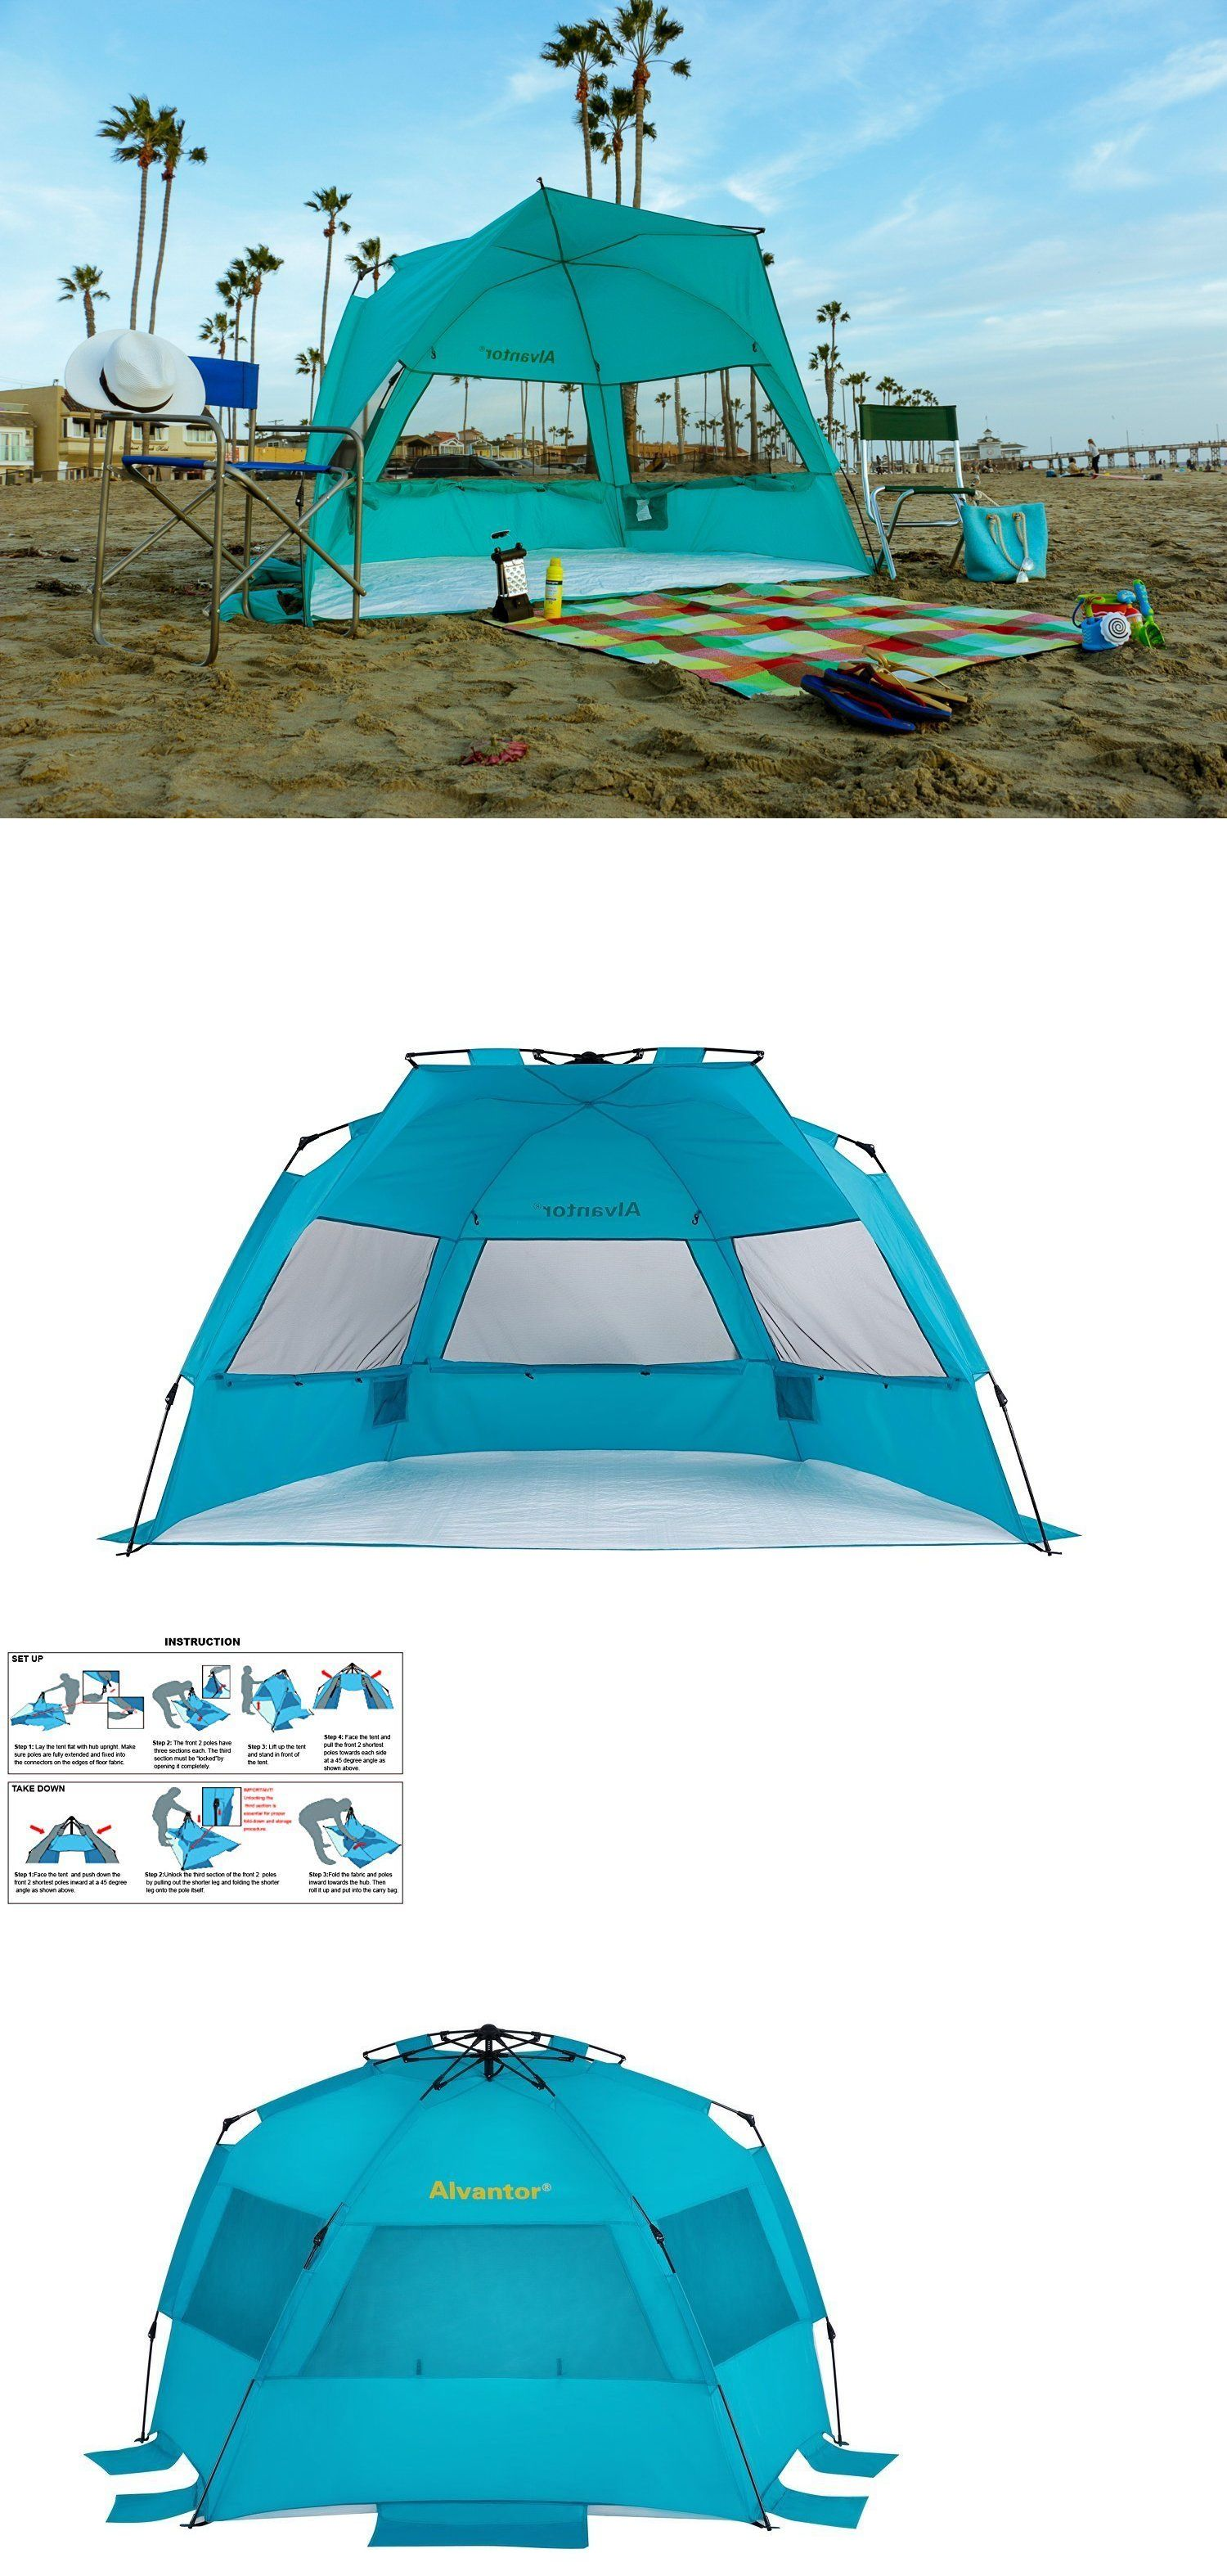 Canopies and Shelters 179011 Large Beach Tent Cabana Canopy Umbrella Outdoor Sun Fun Uv Shelter  sc 1 st  Pinterest & Canopies and Shelters 179011: Large Beach Tent Cabana Canopy ...